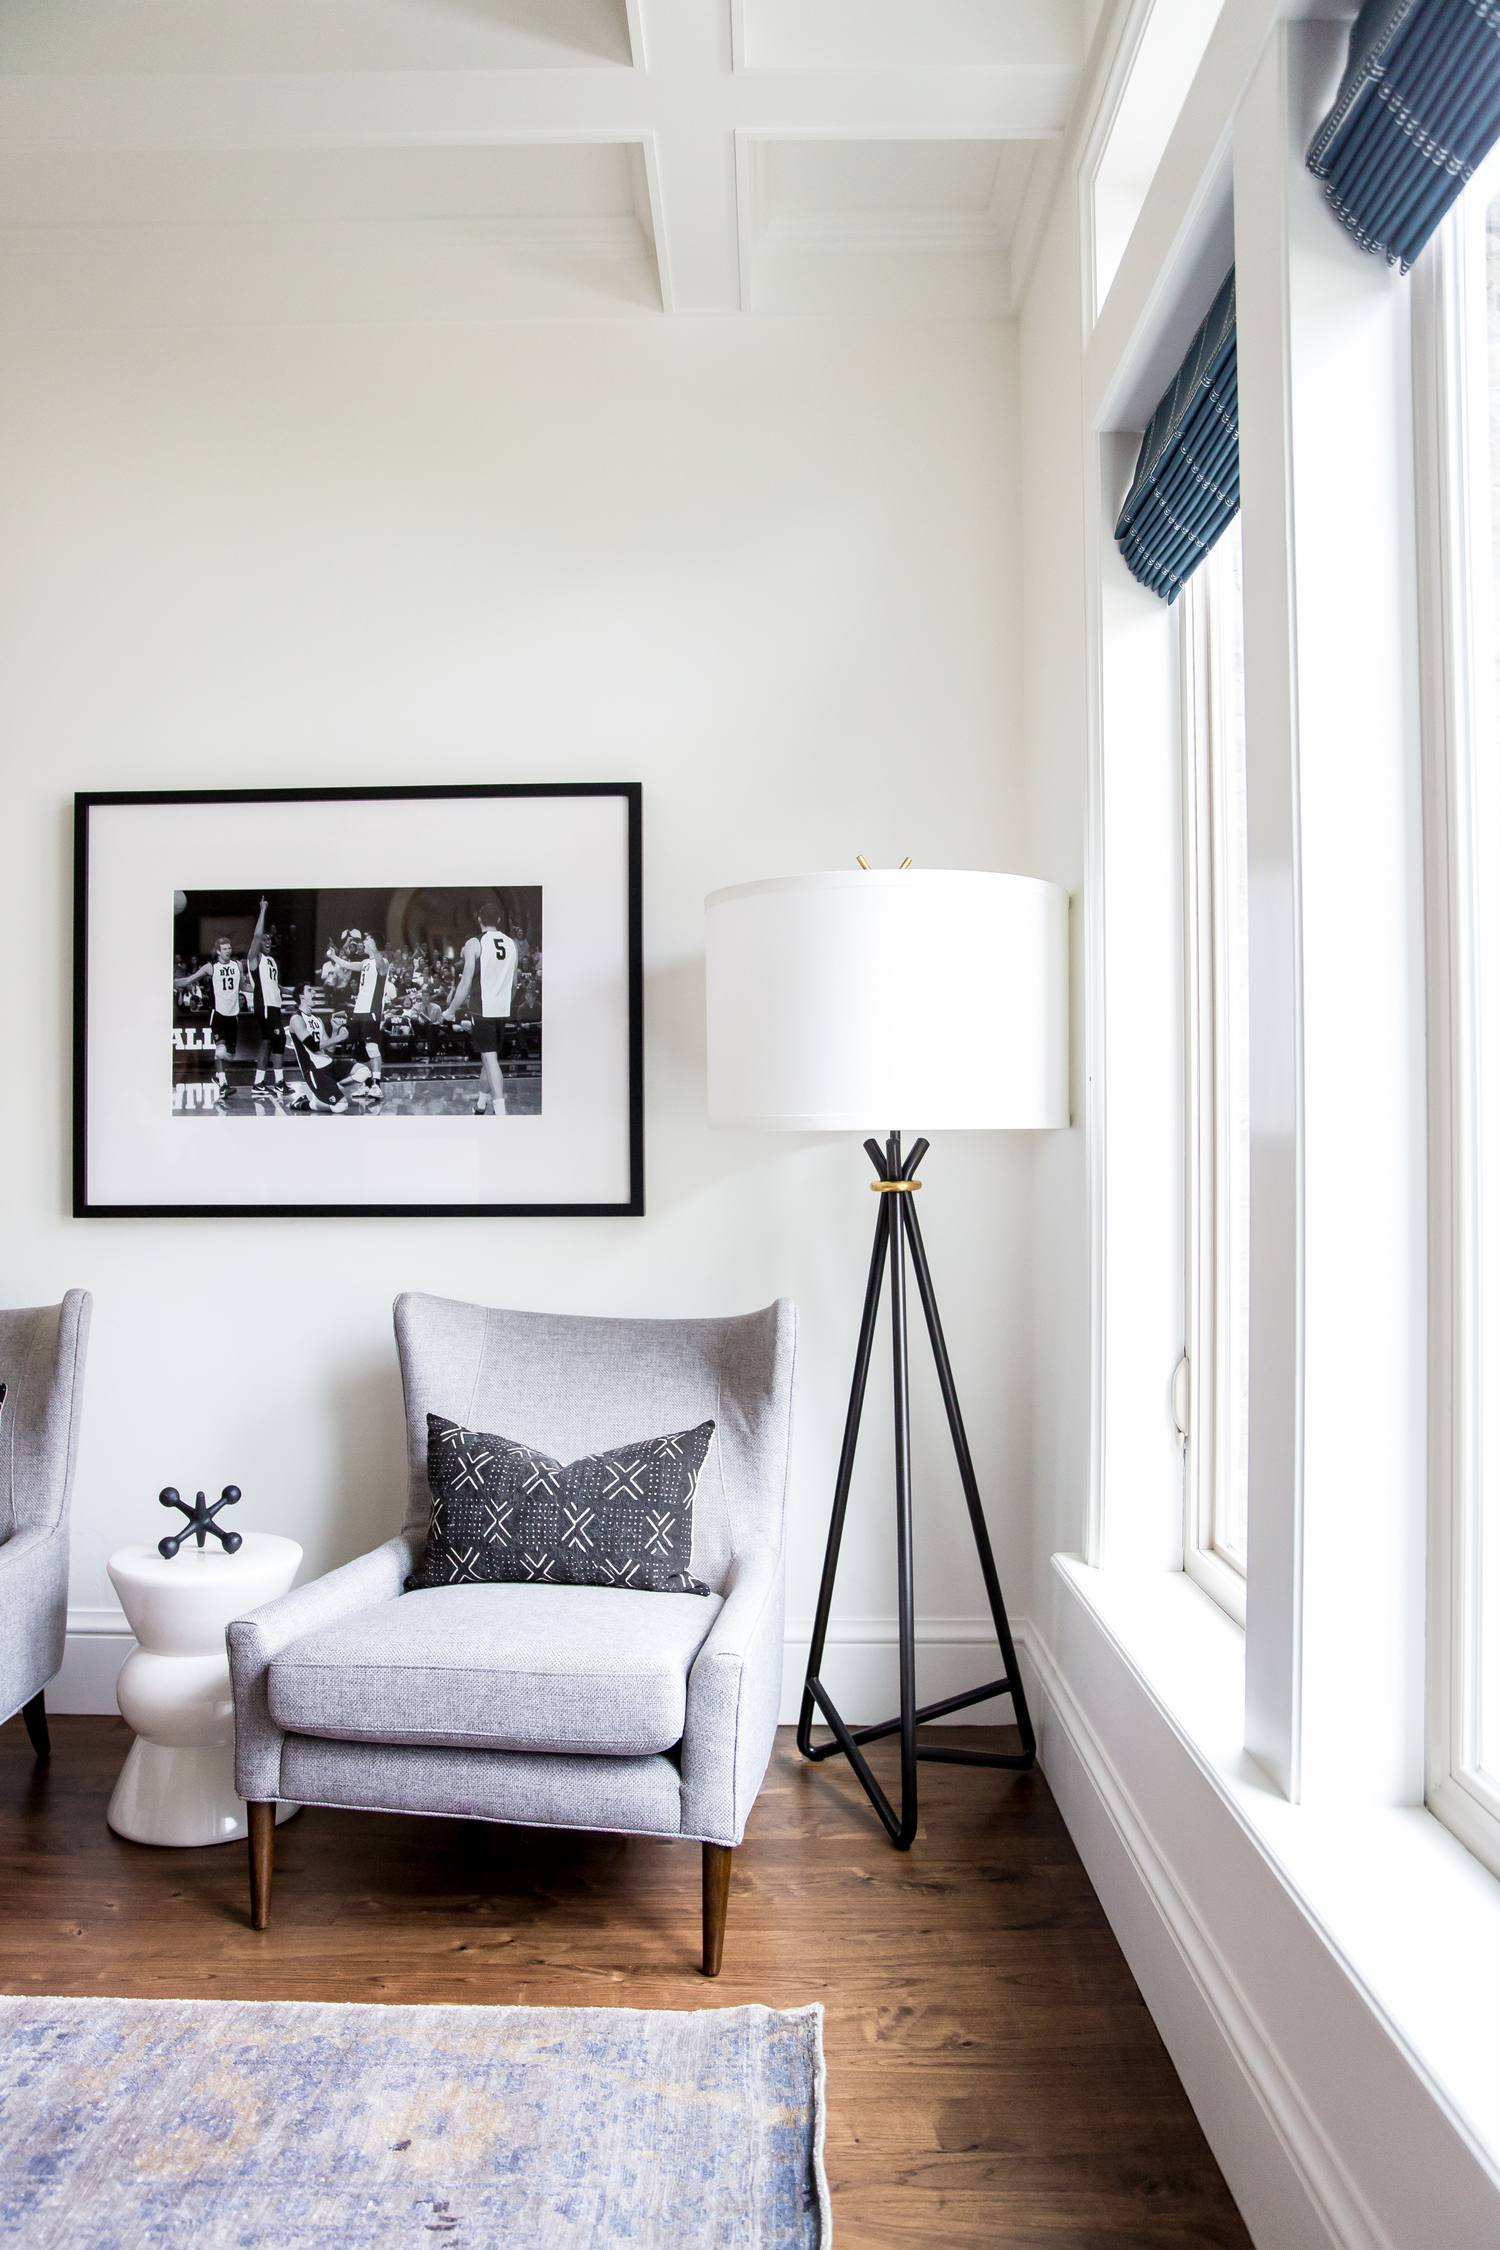 White and black lamp beside sofa seat